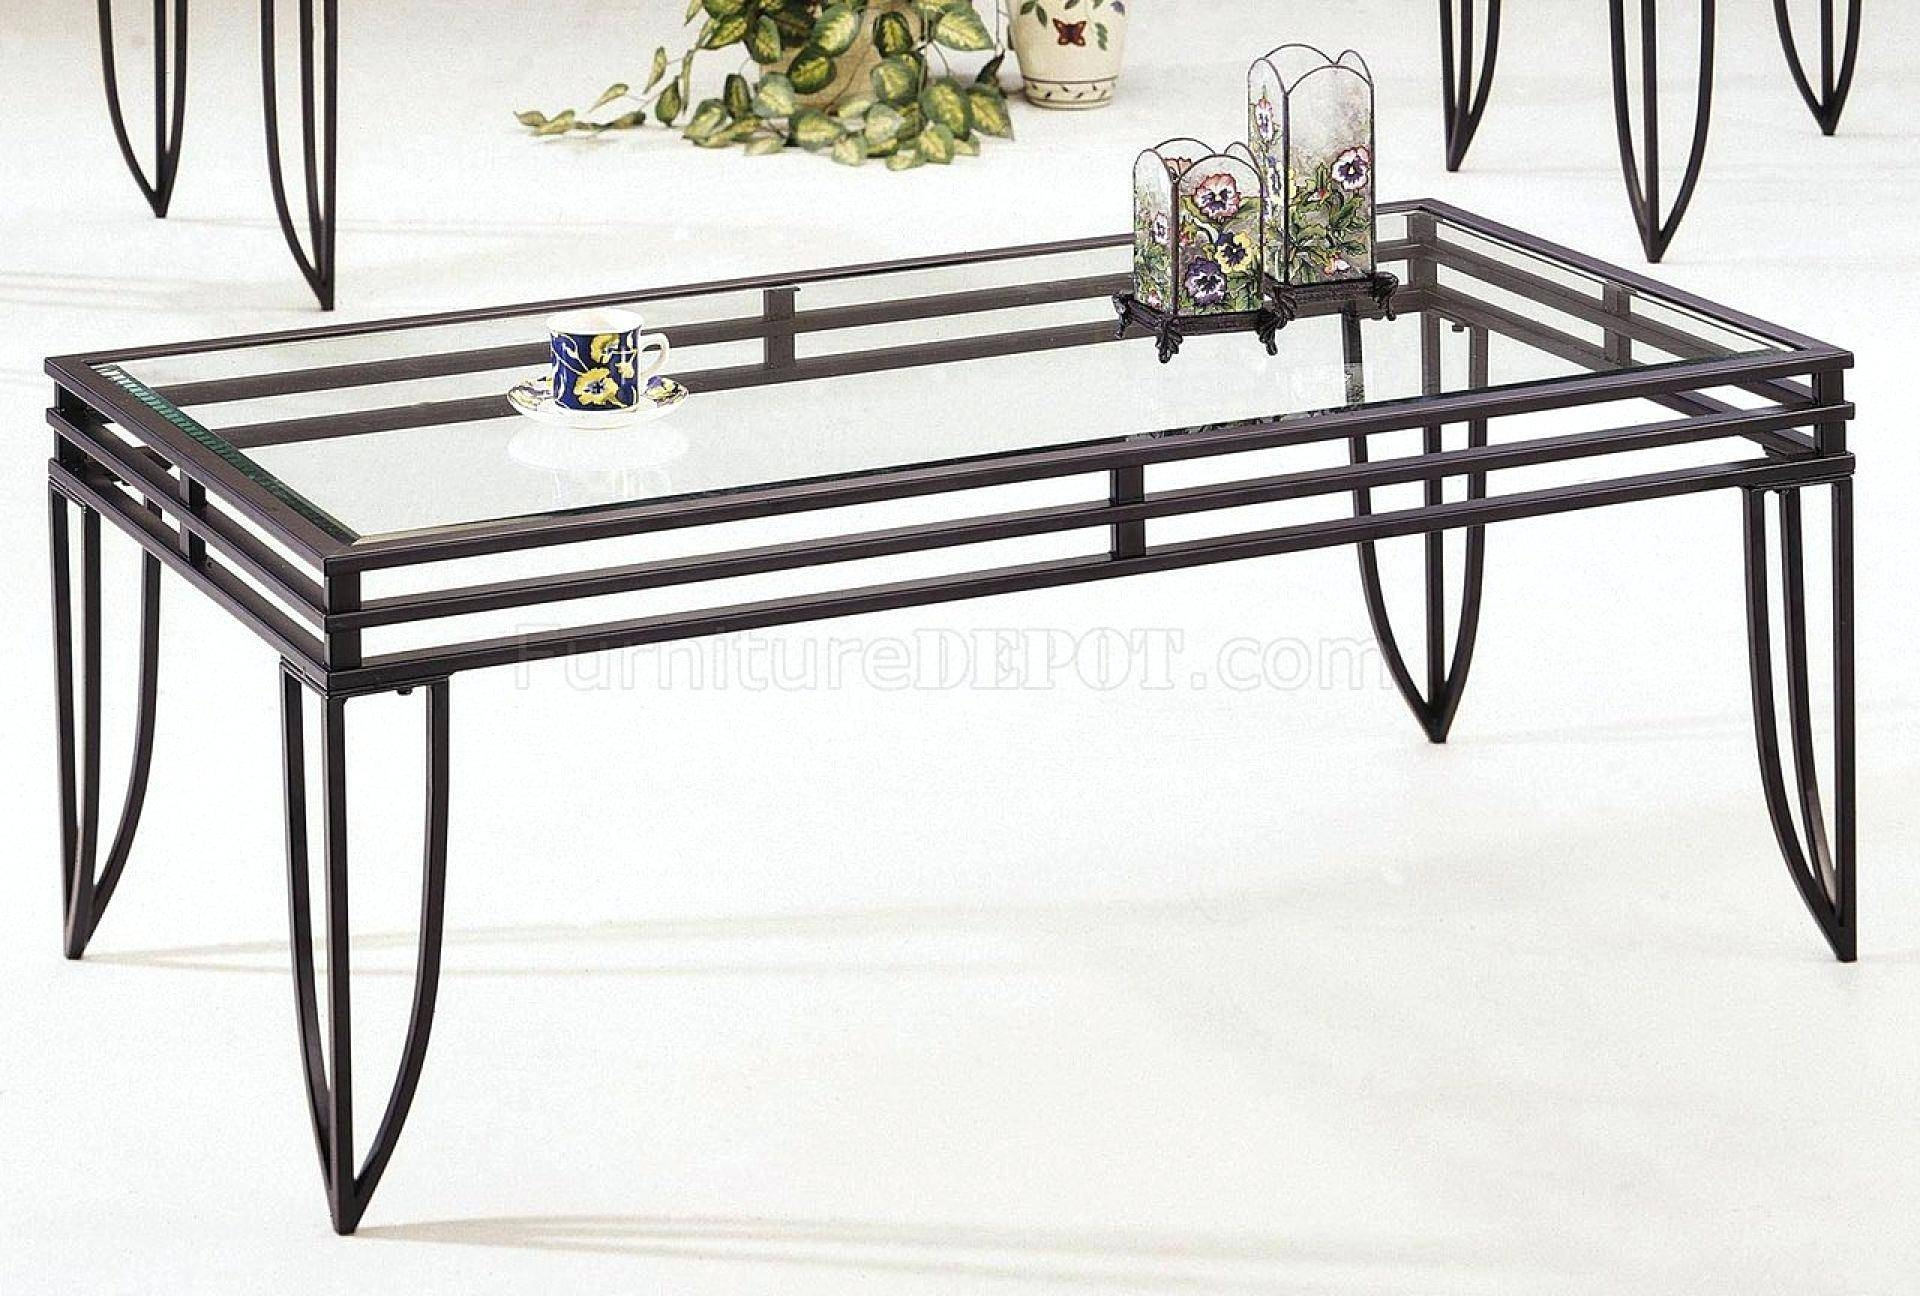 Coffee Table: Glass Metal Coffee Table. Glass Top Metal Coffee inside Glass and Metal Coffee Tables (Image 8 of 30)